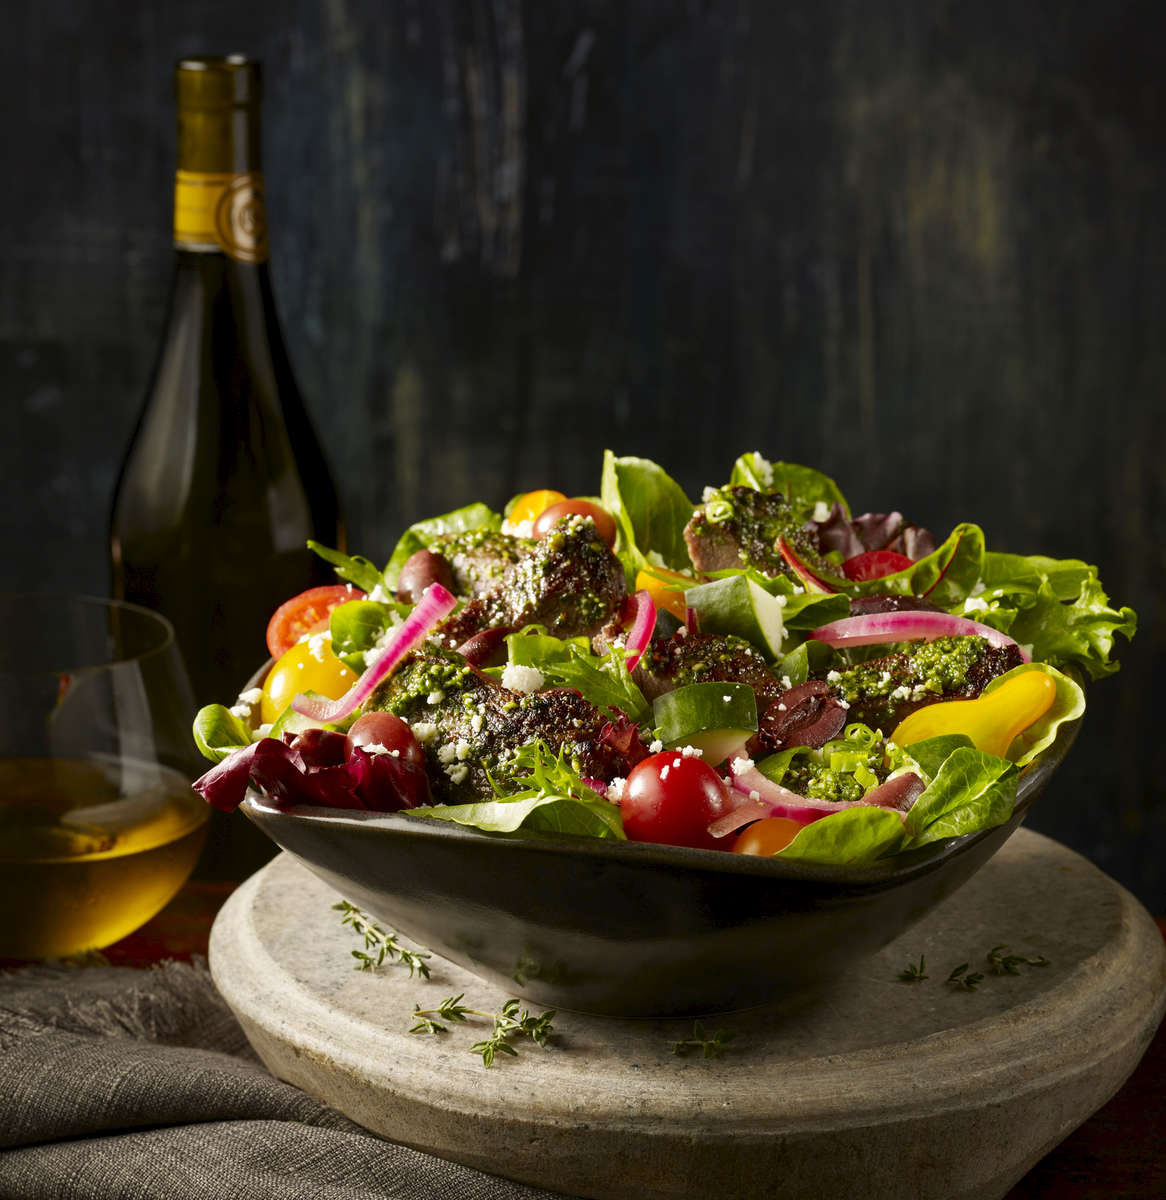 Hill_ChimichurriSalad